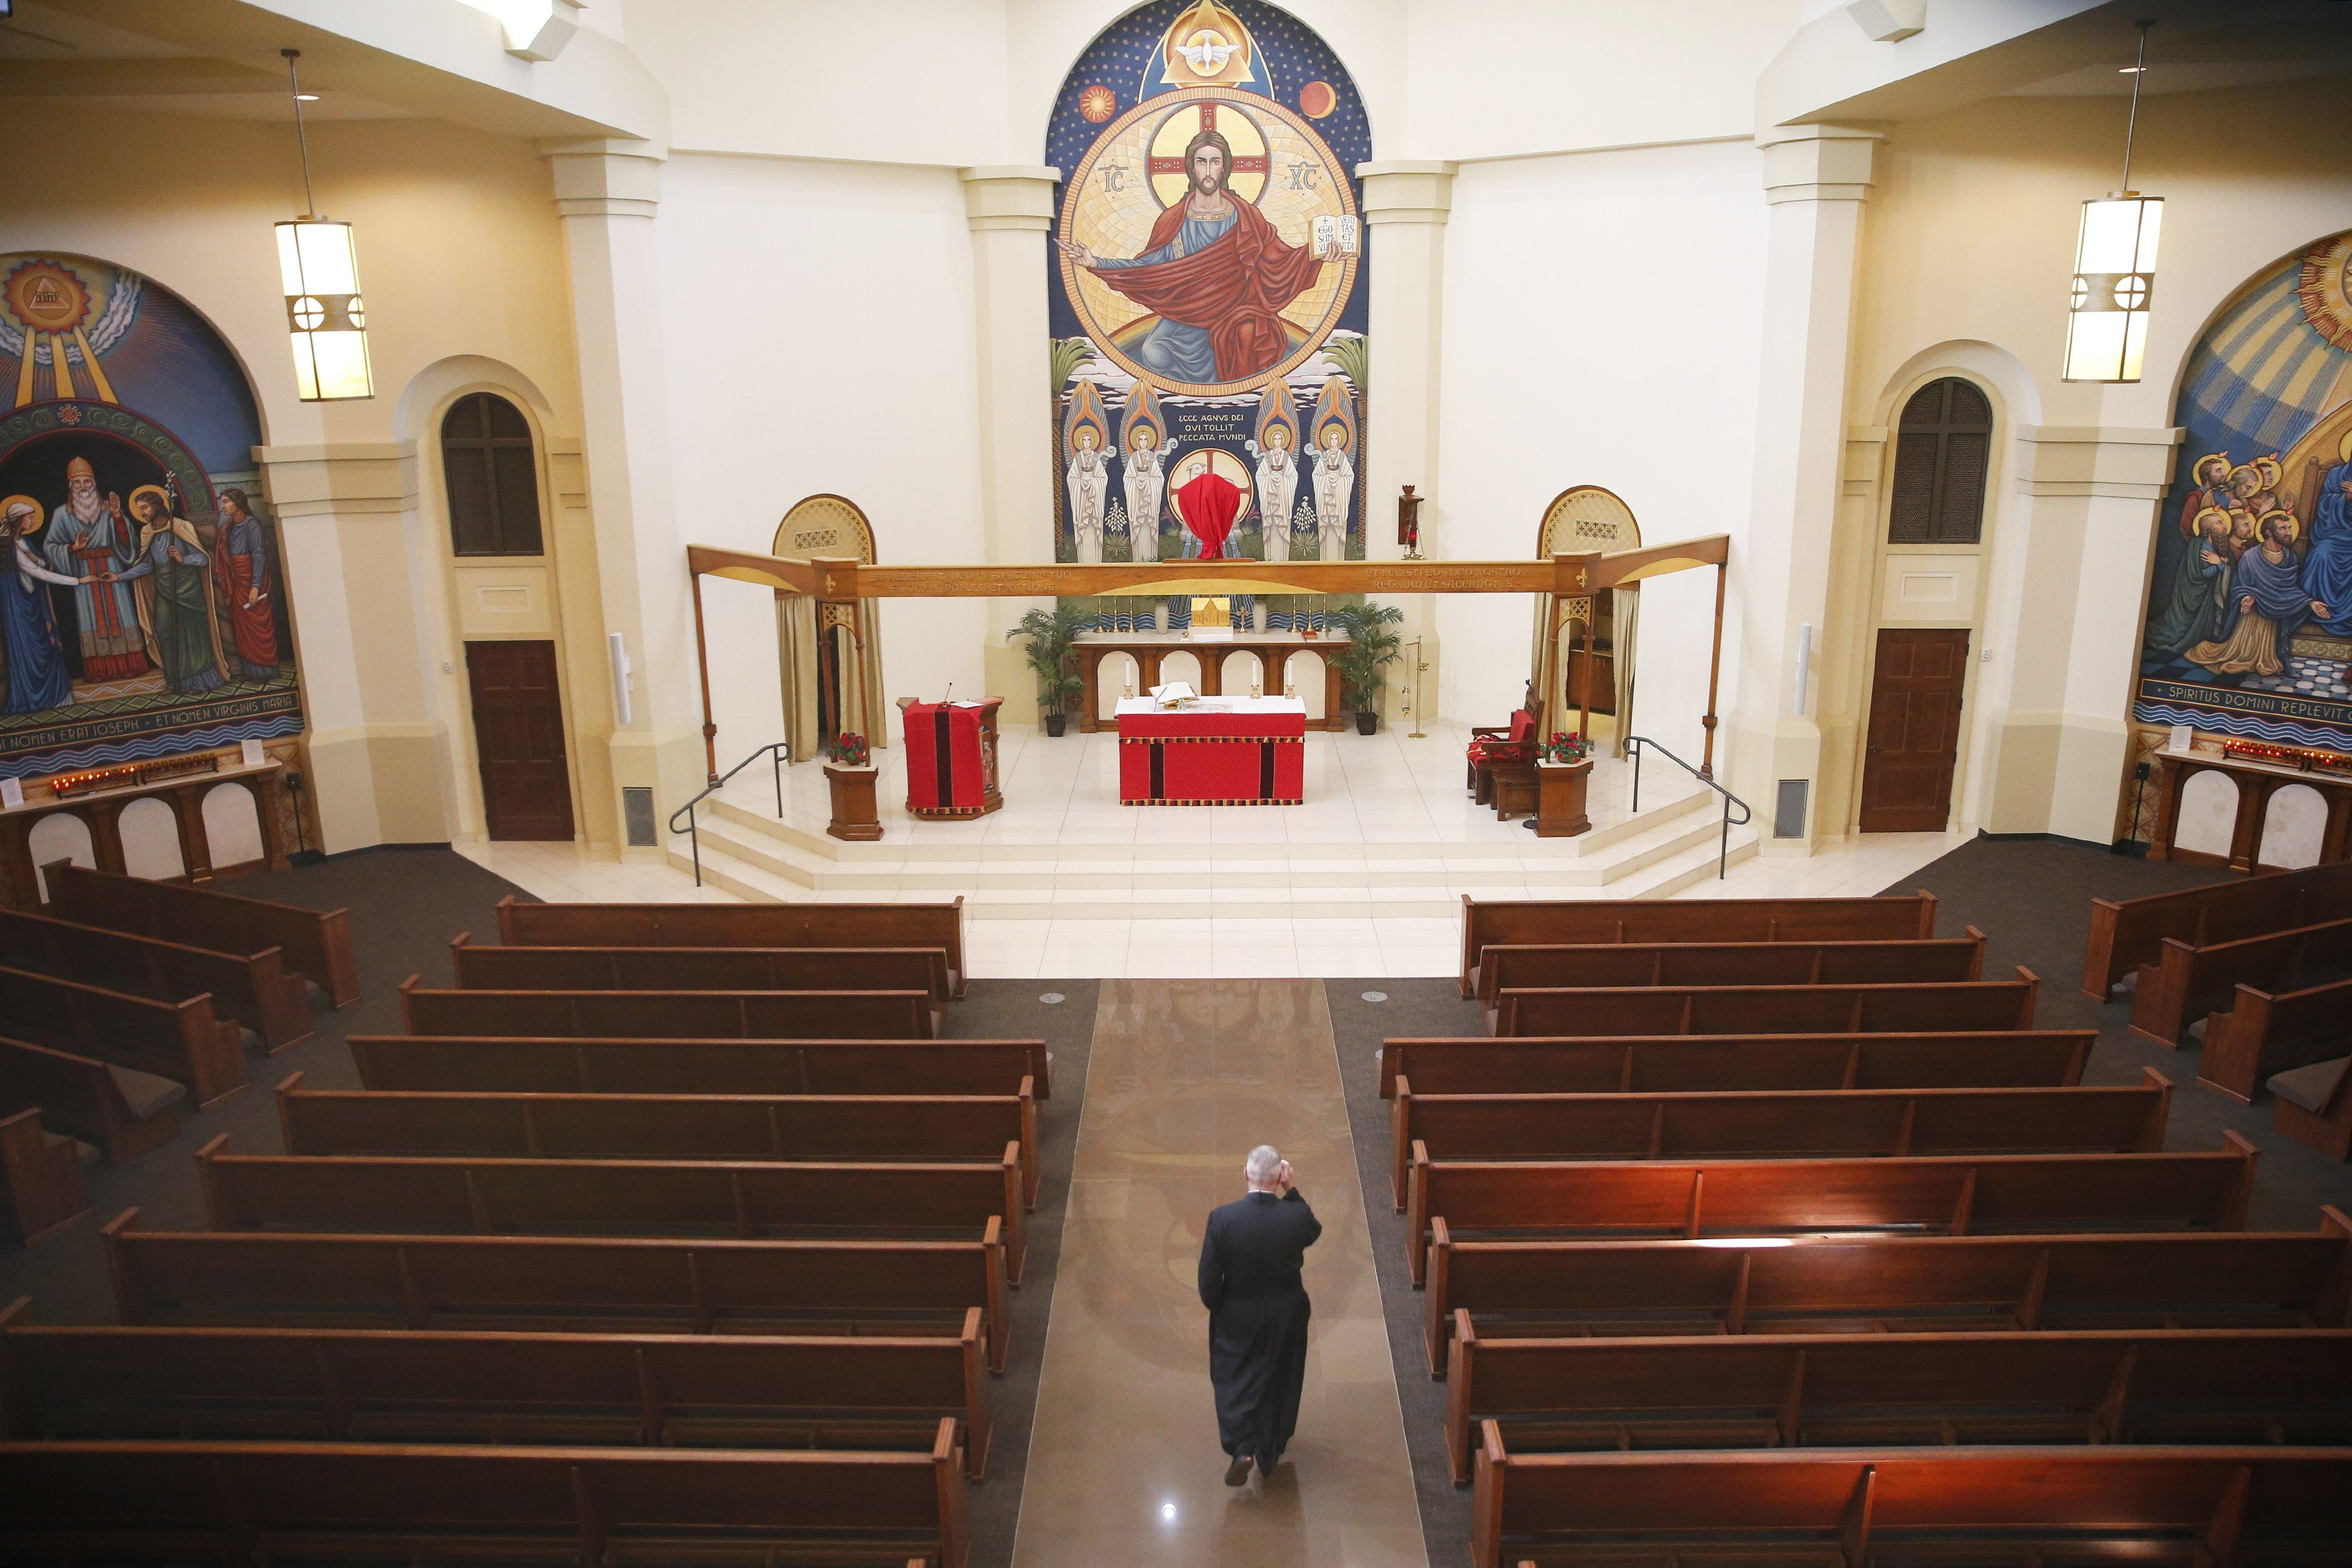 At one Catholic Church in Arizona, the abuse scandal brings frustration, but faith remains strong